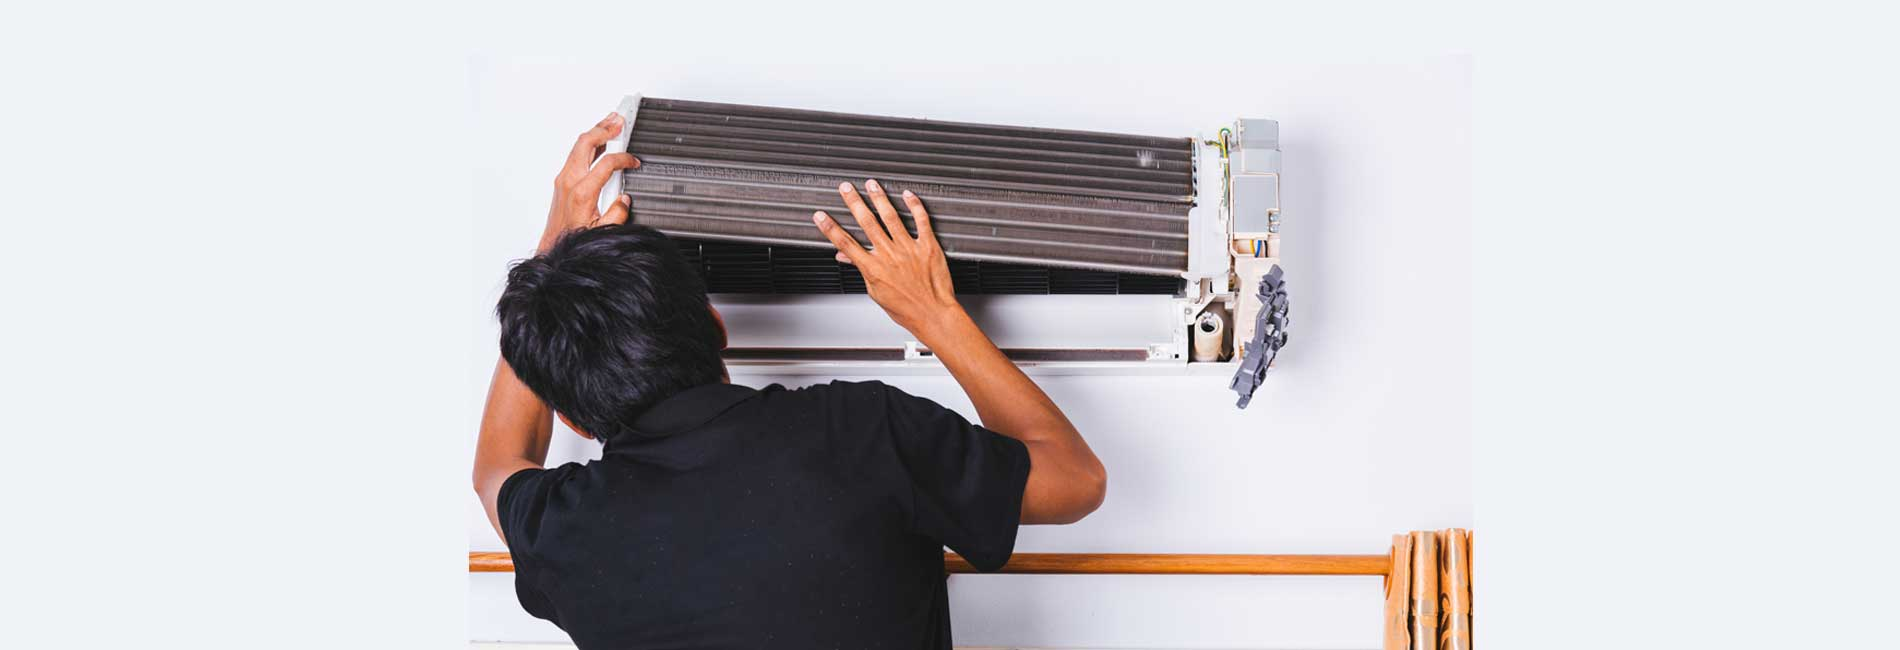 IFB Split AC Uninstallation in Chembarambakkam